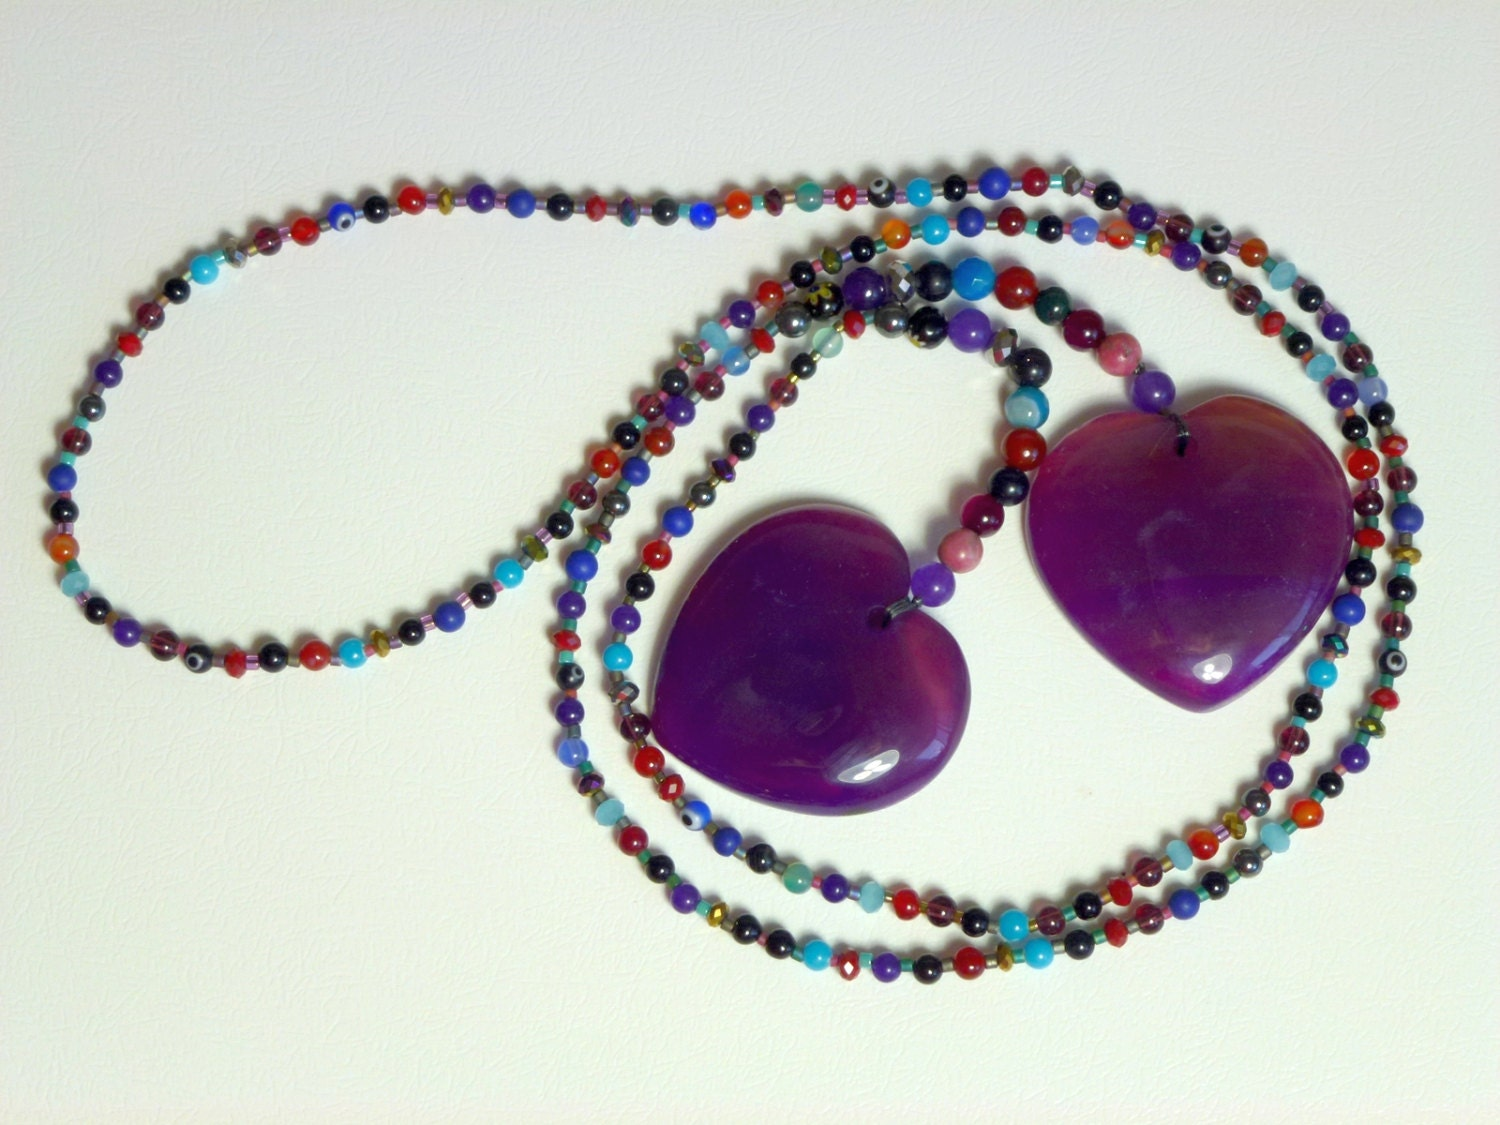 Breast massage healing stone necklace - mature